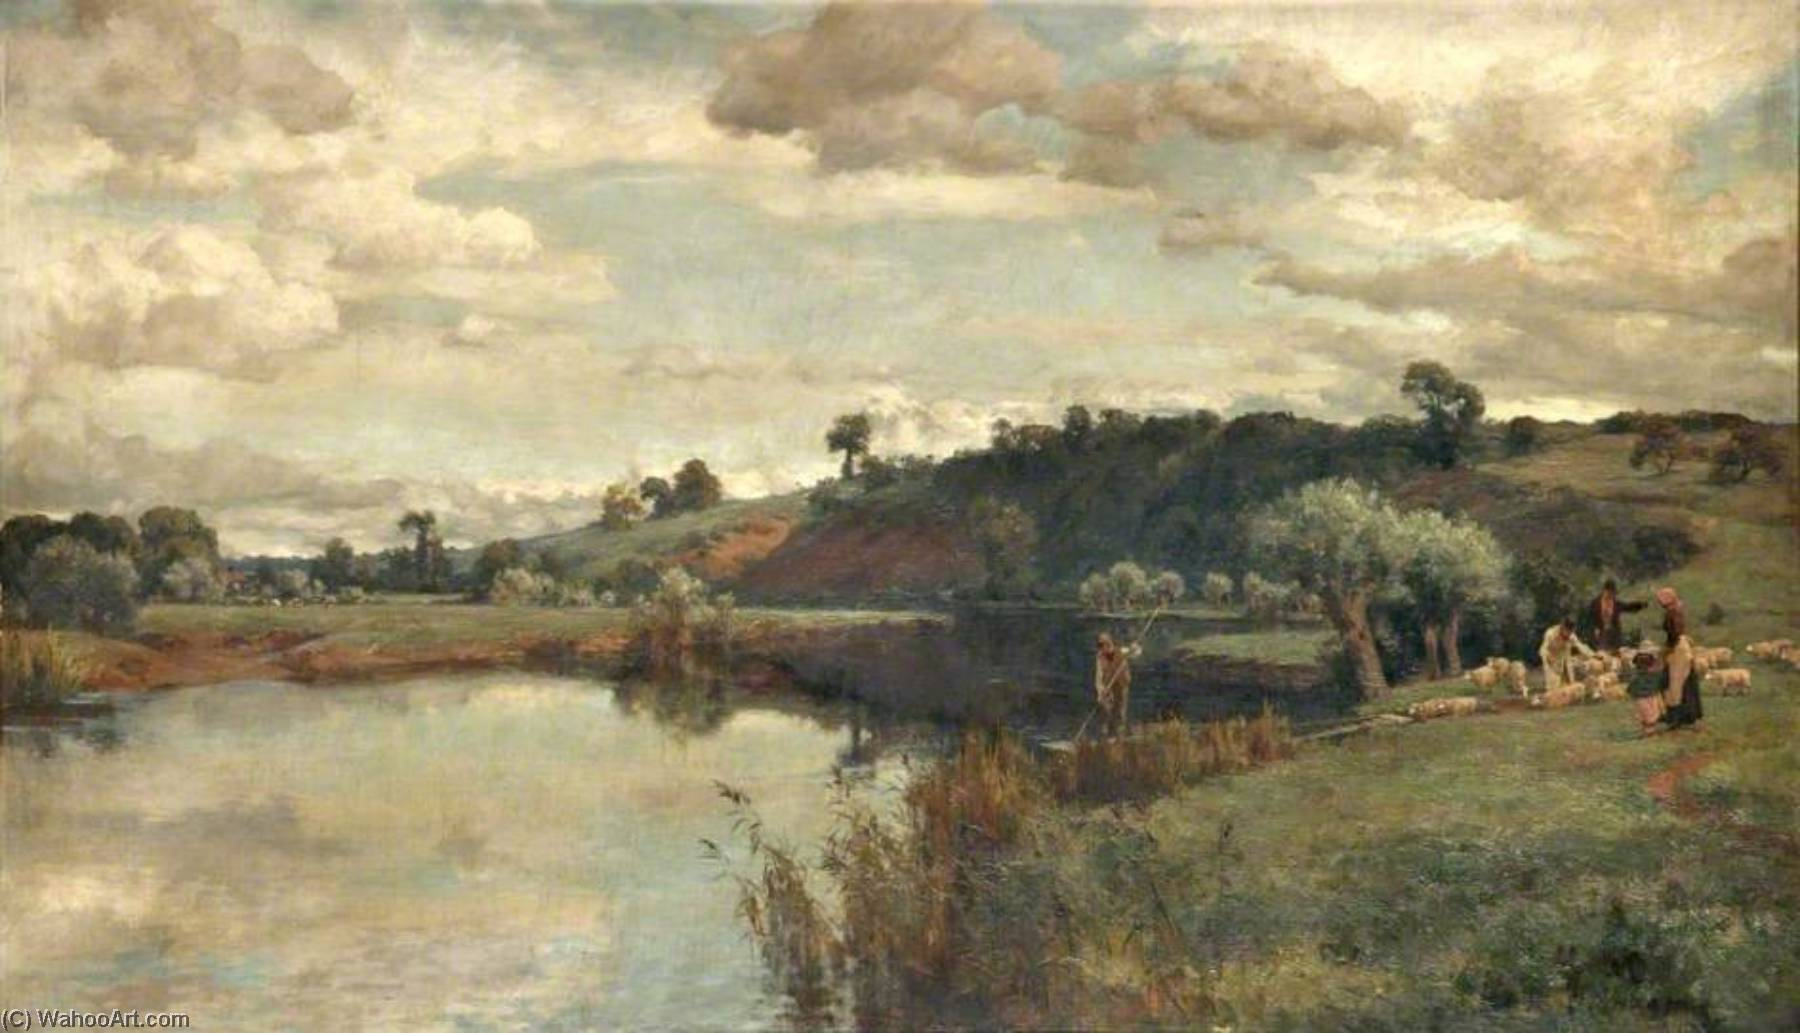 Wikioo.org - The Encyclopedia of Fine Arts - Painting, Artwork by Alfred William Parsons - River Scene with a Shepherd and Sheep by a Ferry